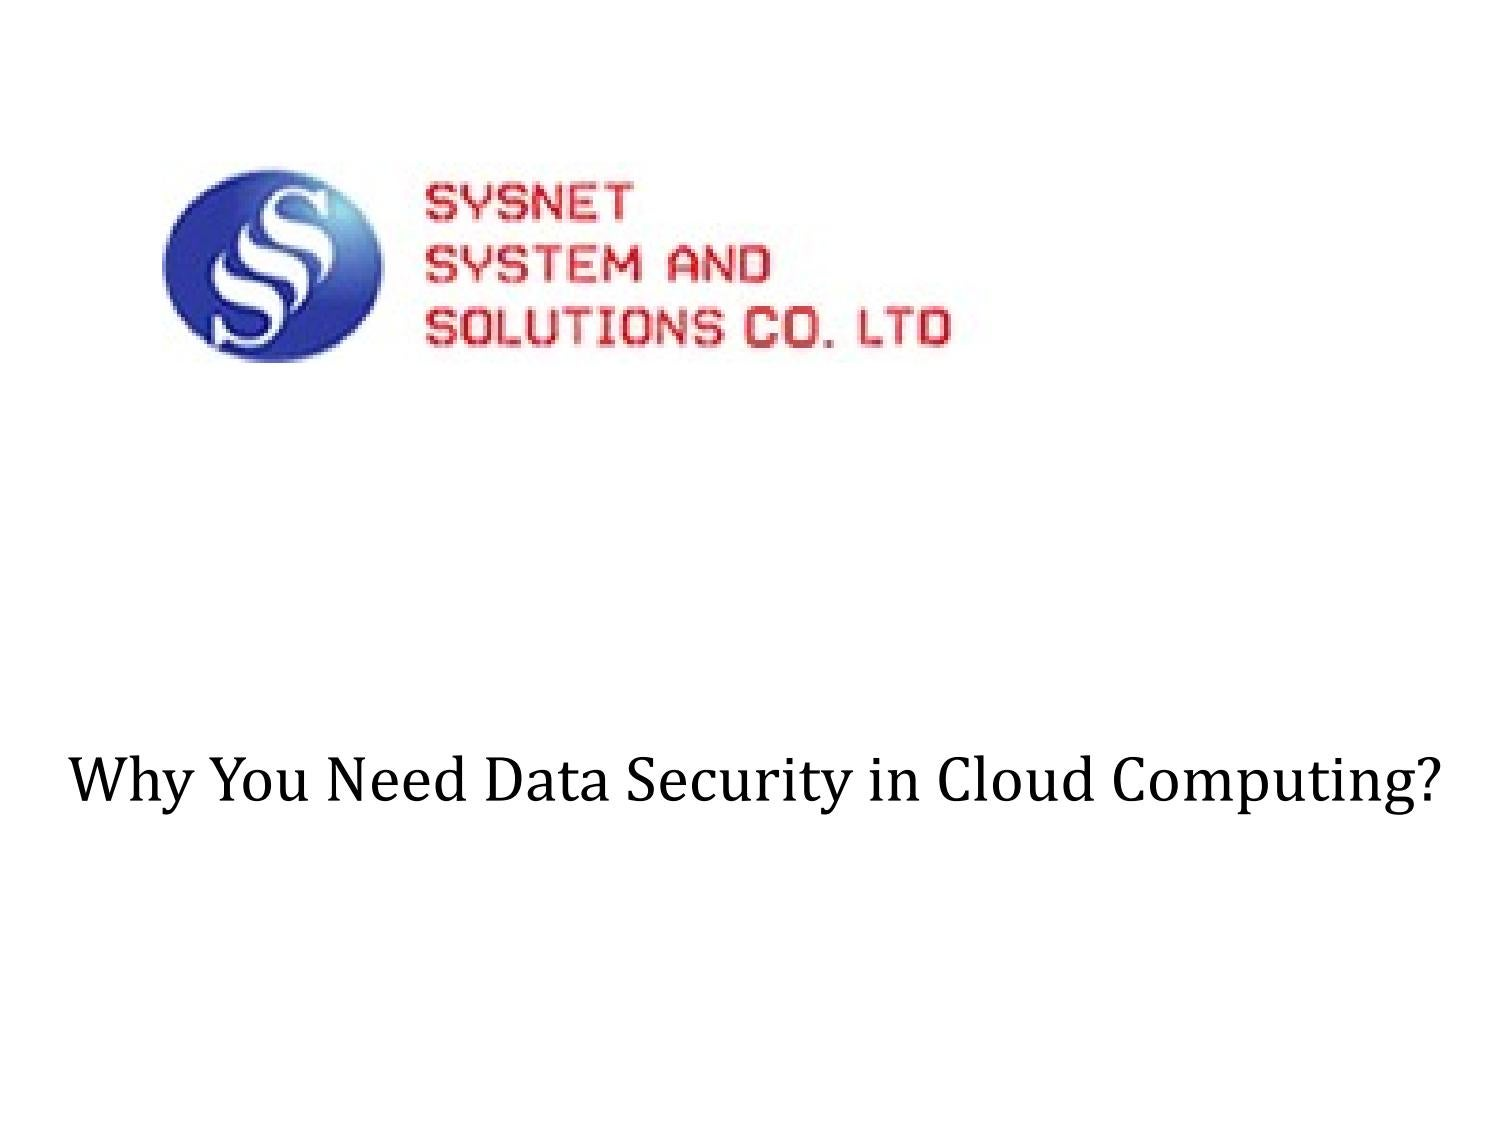 Why You Need Data Security In Cloud Computing Services